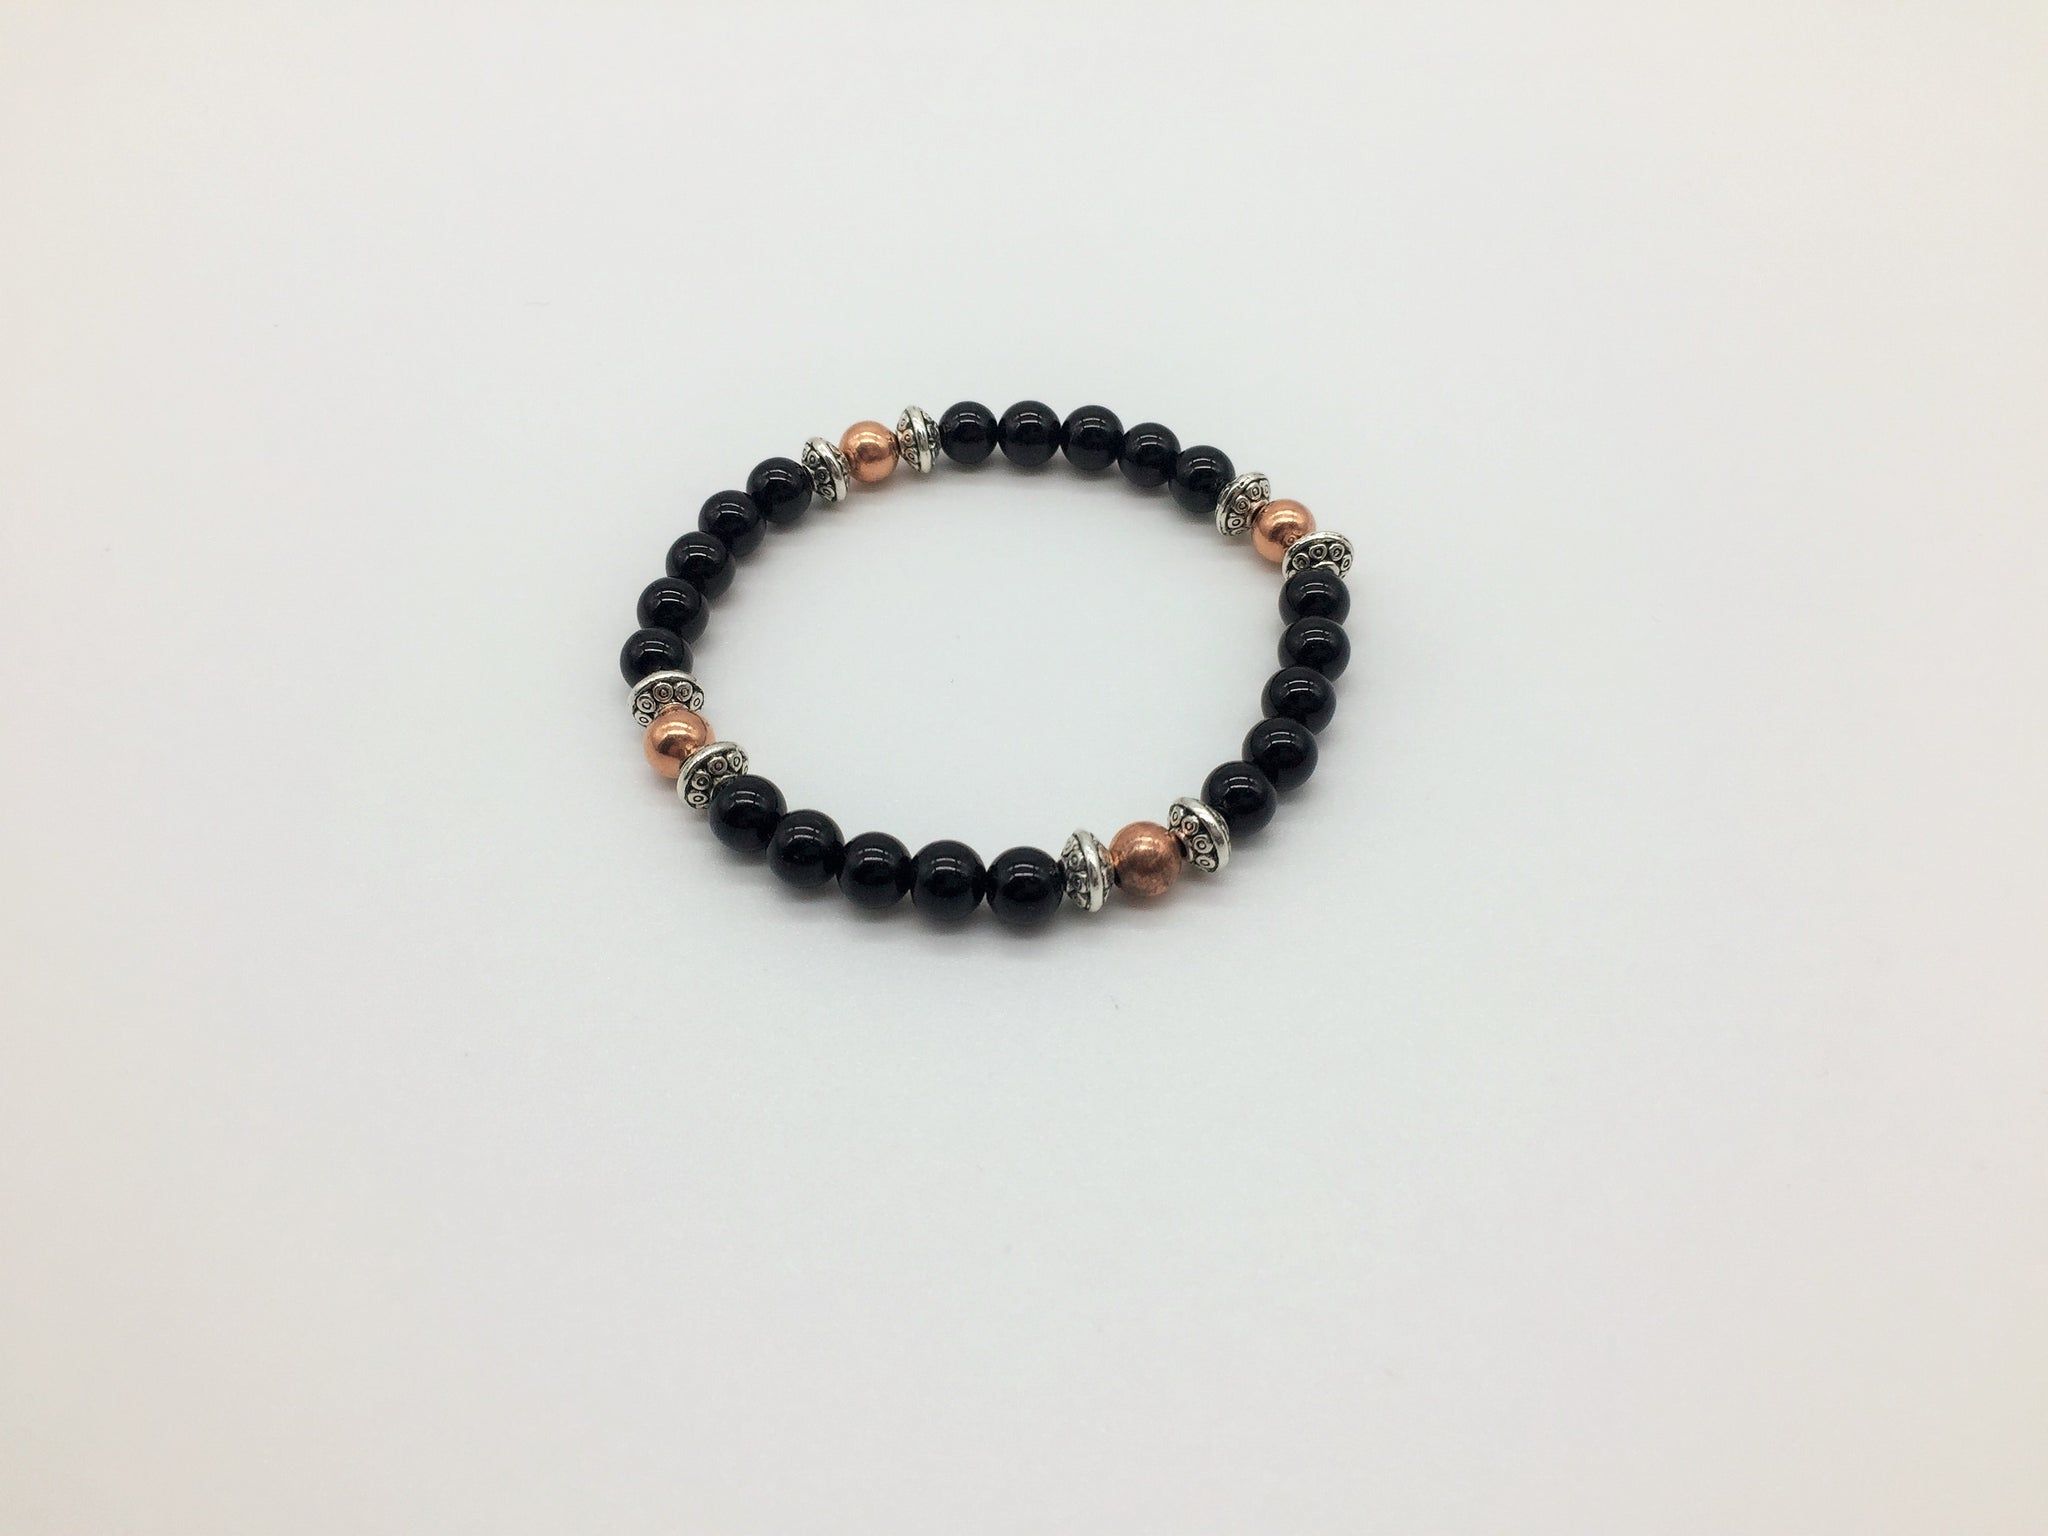 Positivity & Happiness Black Onyx & Copper healing bracelet